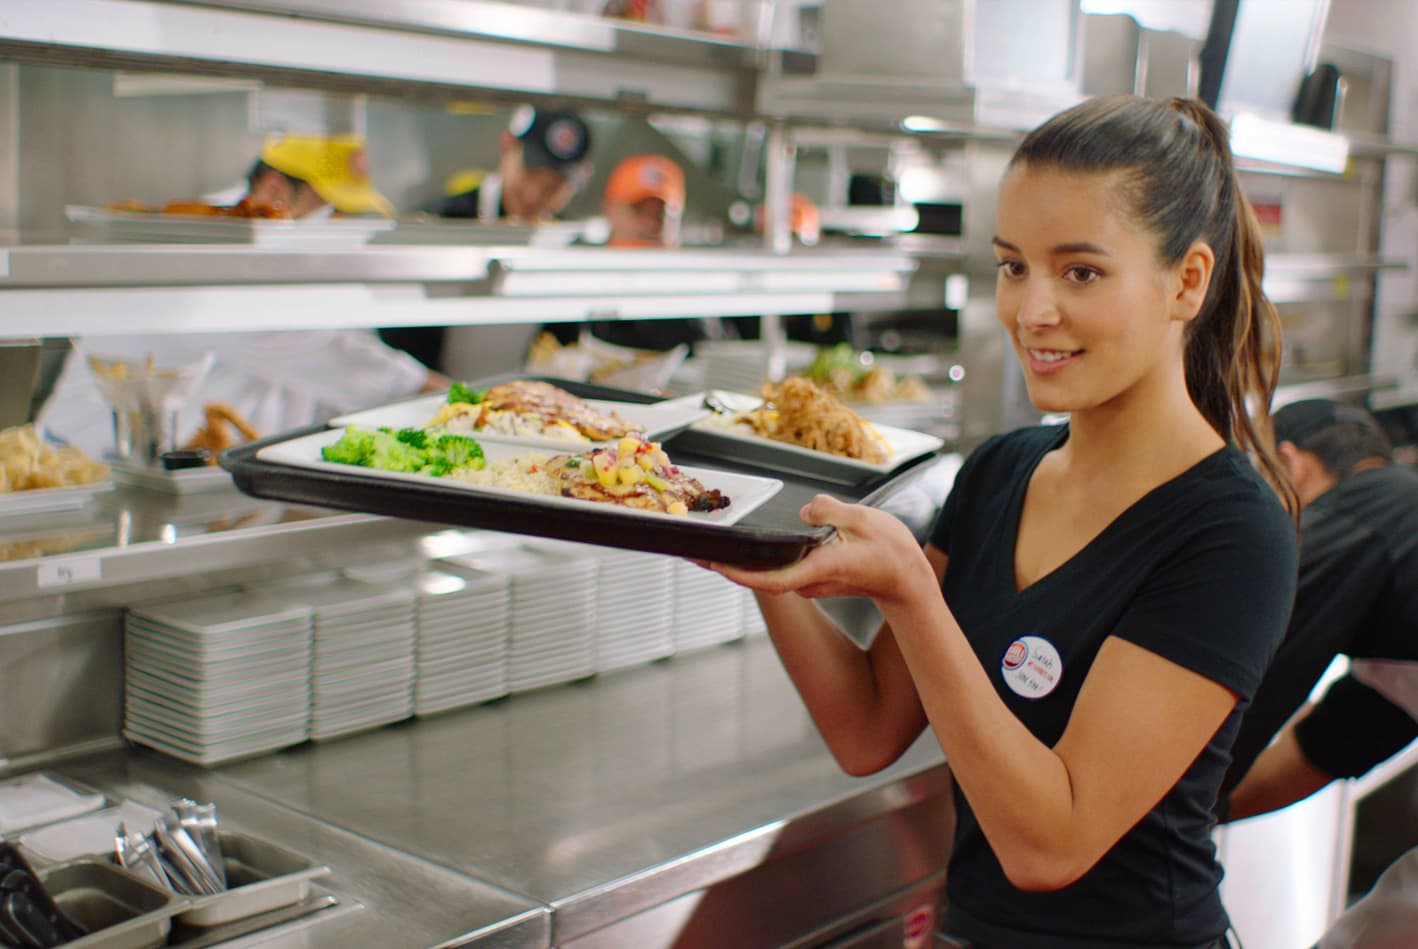 Female server with tray of food